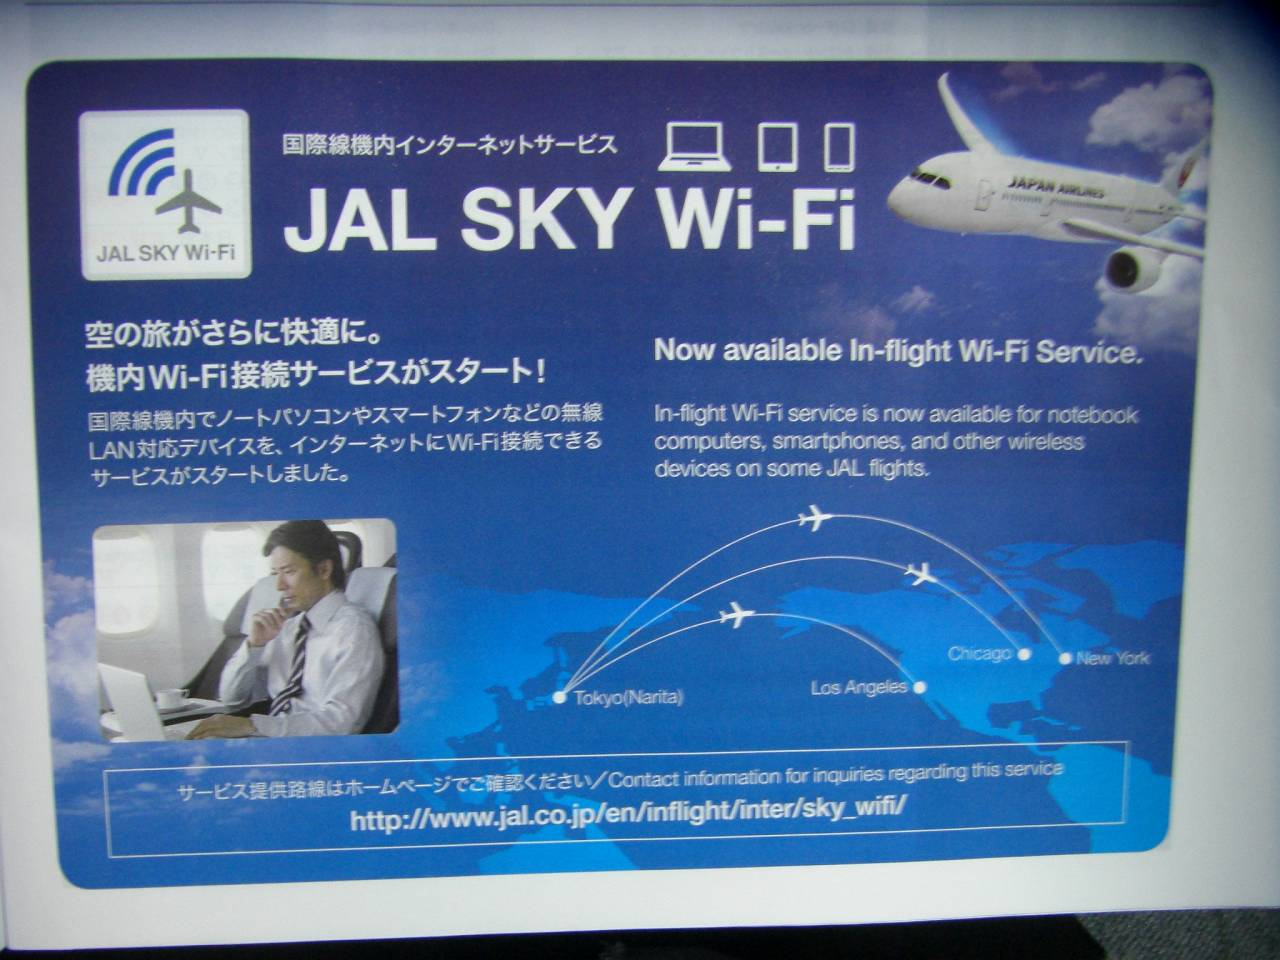 Jal_sky_wifis